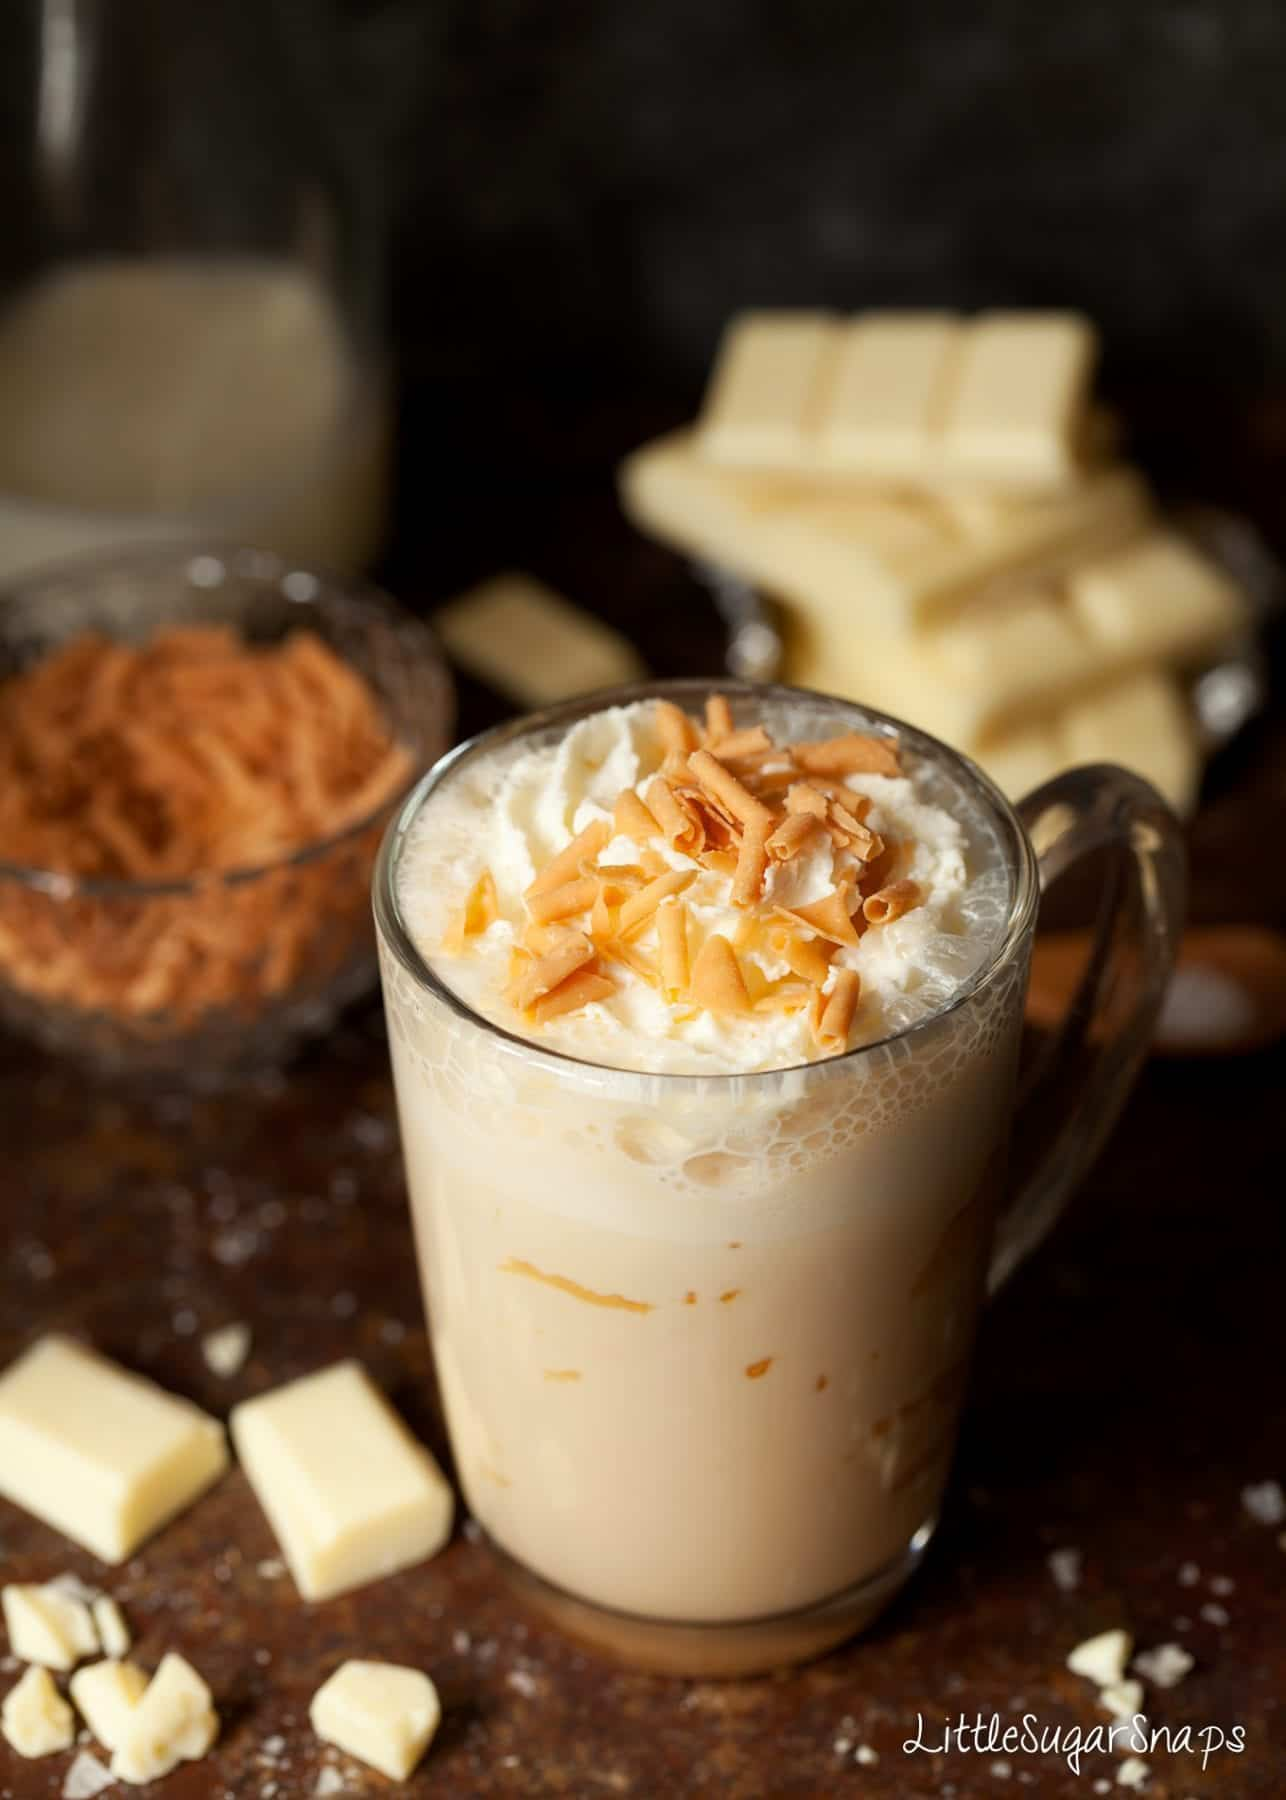 A mug of Caramelised White Hot Chocolate with cream and caramel flakes.